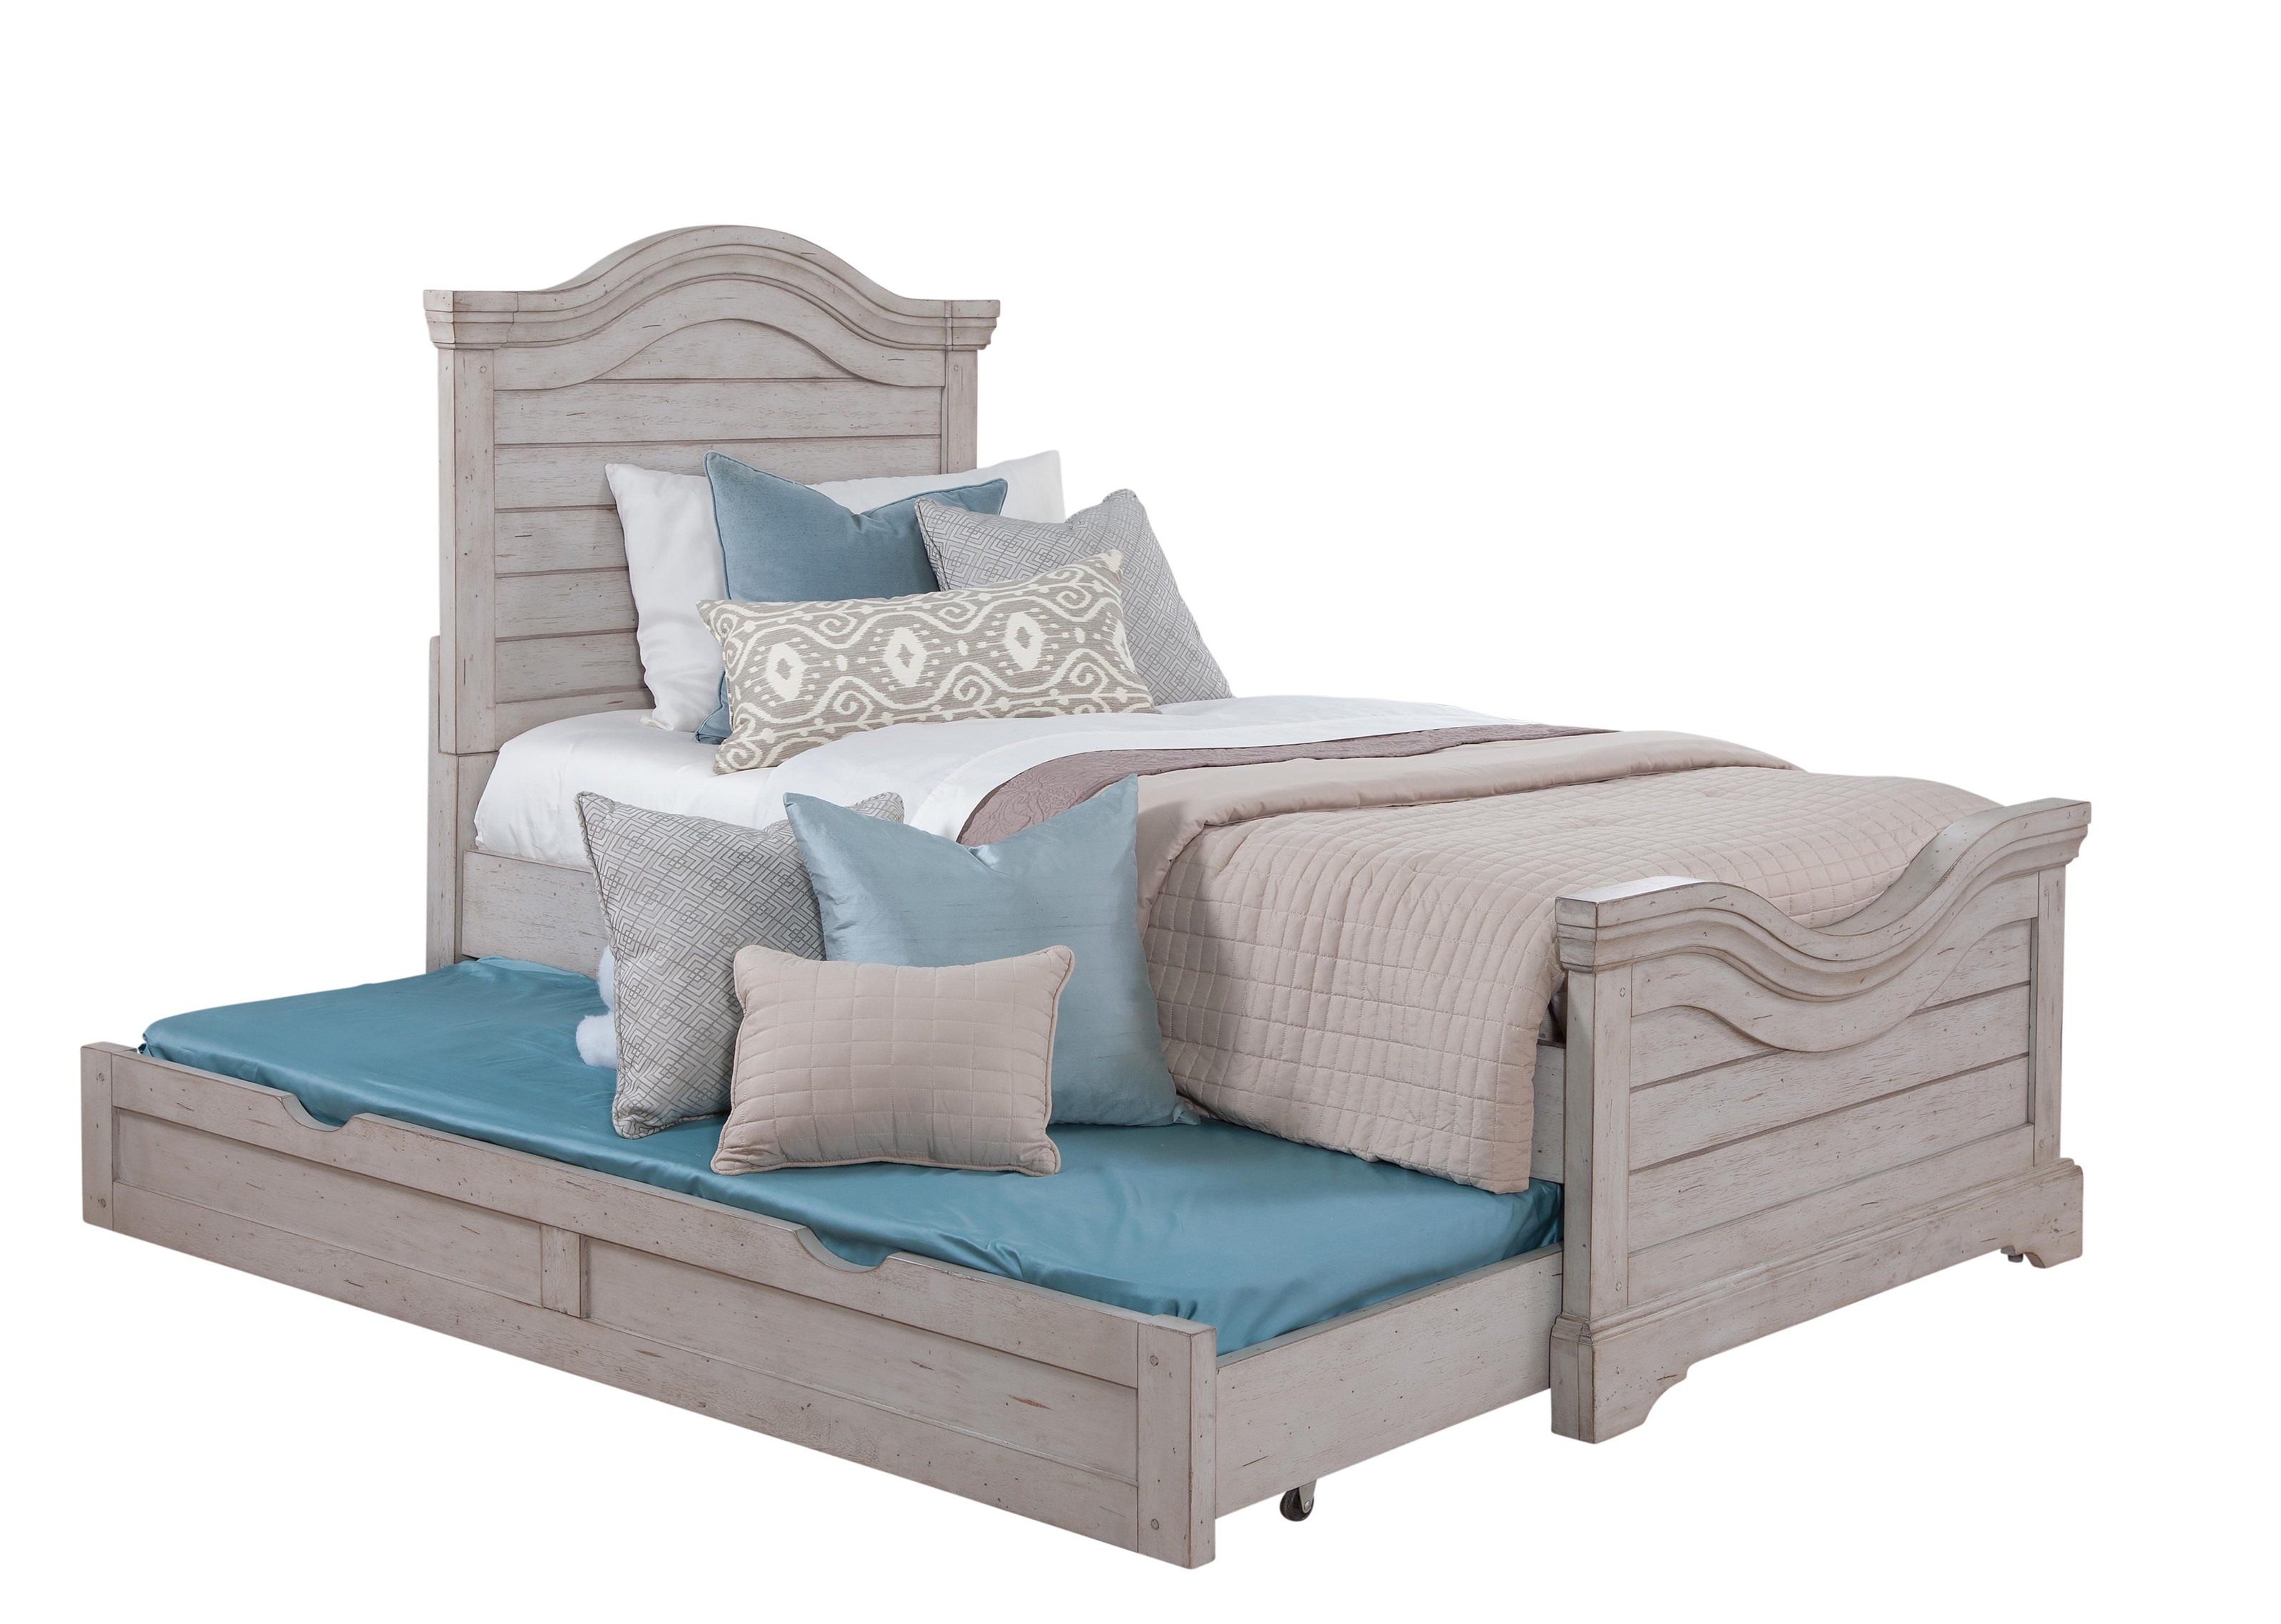 Stonebrook Youth in Antique Gray Trundle Storage Unit by American Woodcrafters at Johnny Janosik